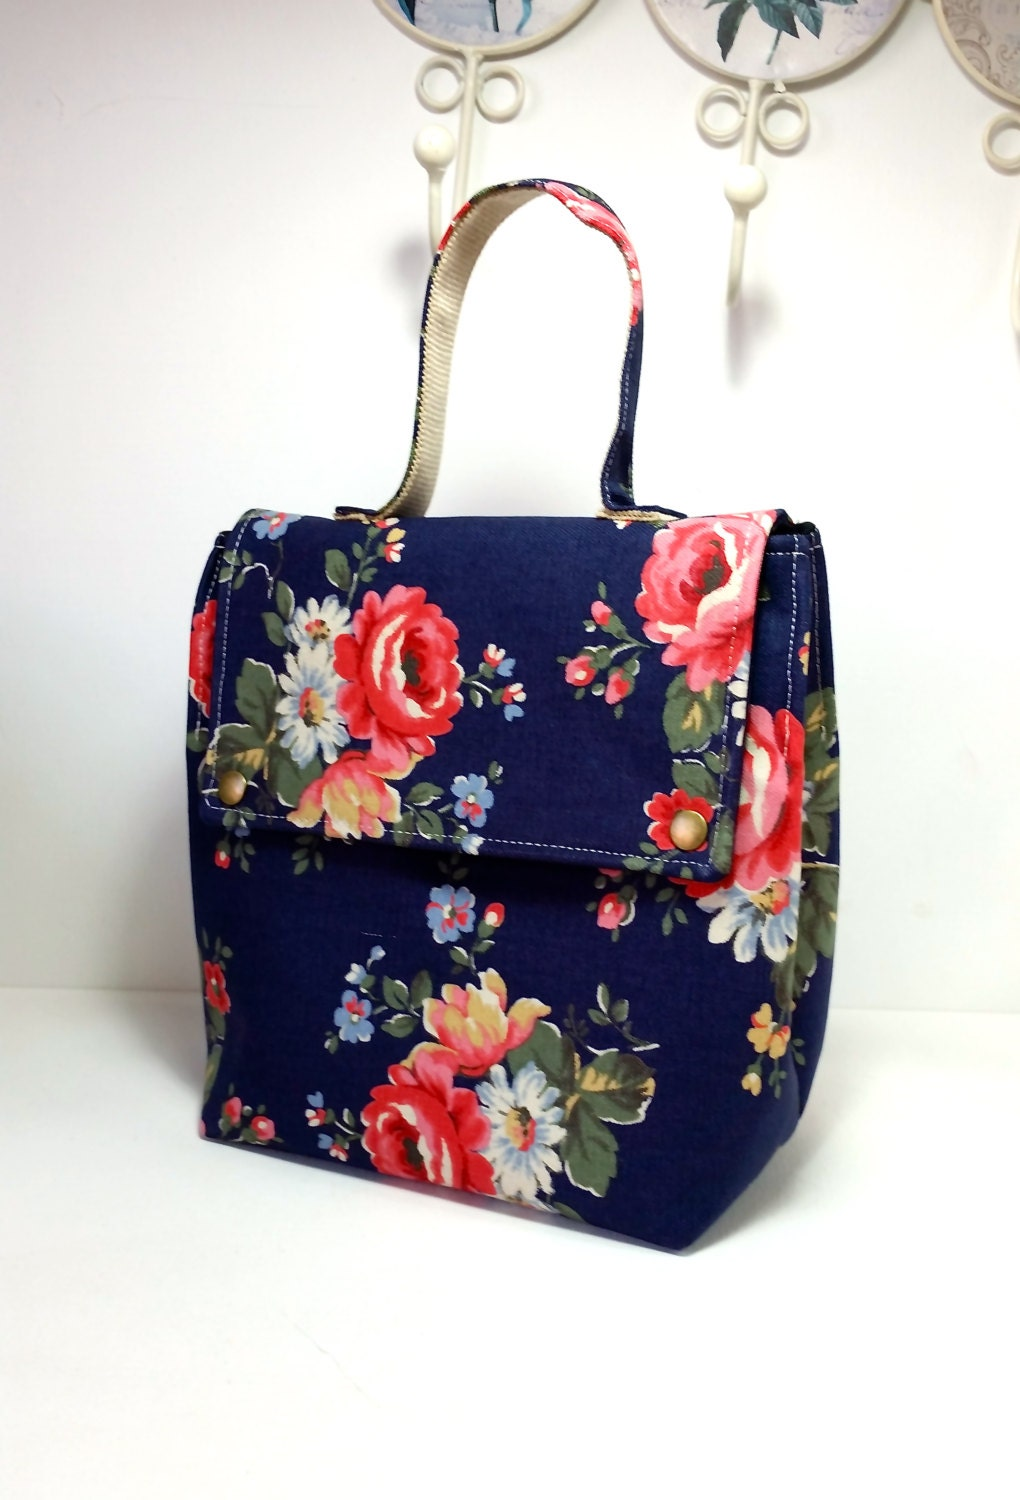 Insulated Lunch Bag Fabric Lunch Bag Dark Blue Floral Prints